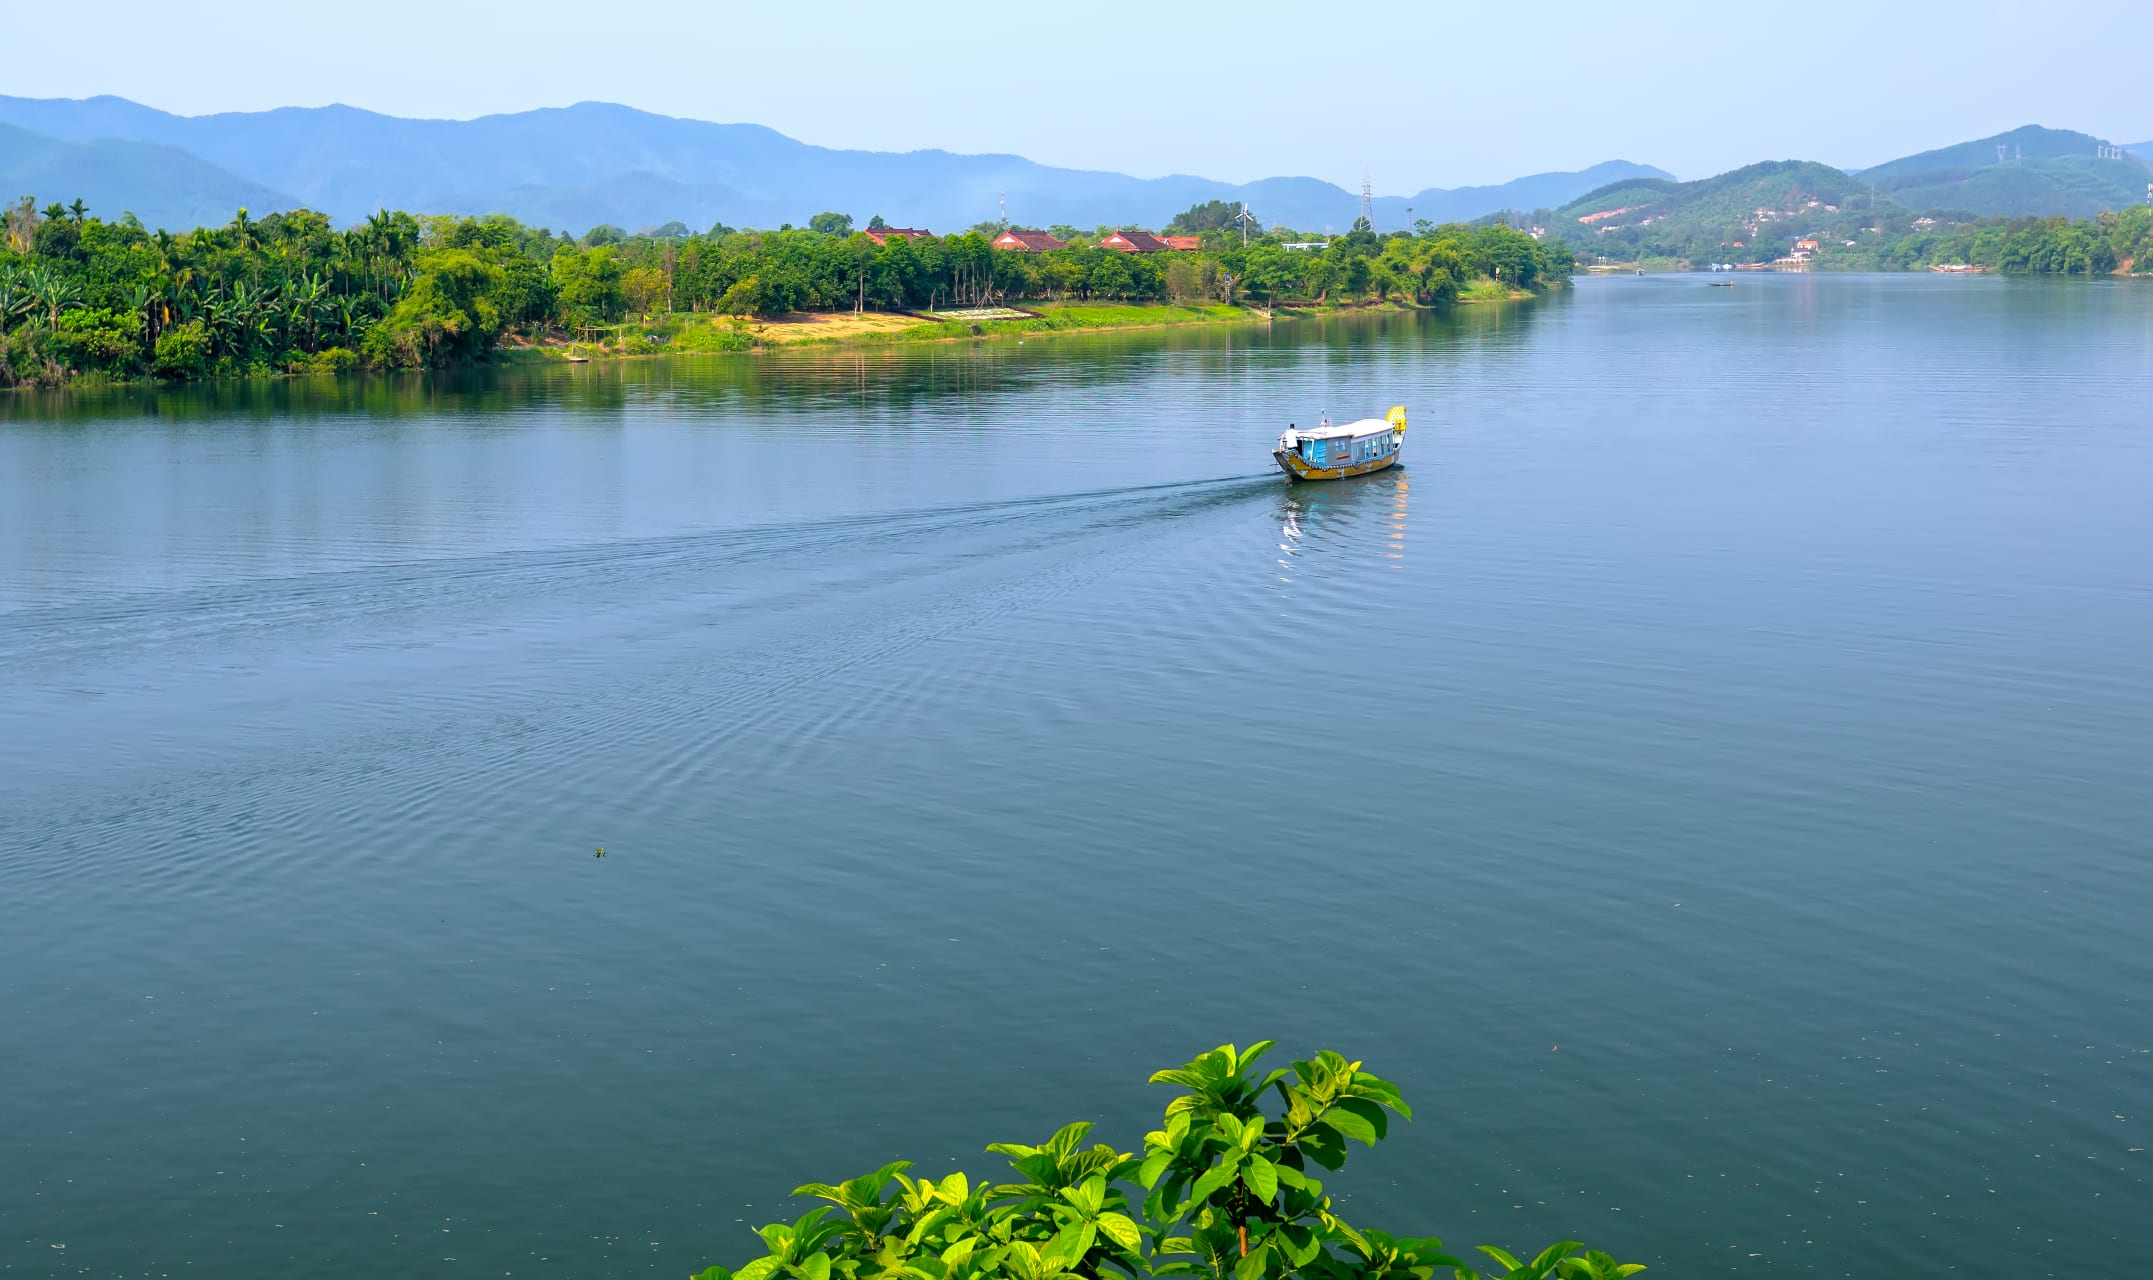 Hue - Discovering Huế - Day 5: The Perfume River